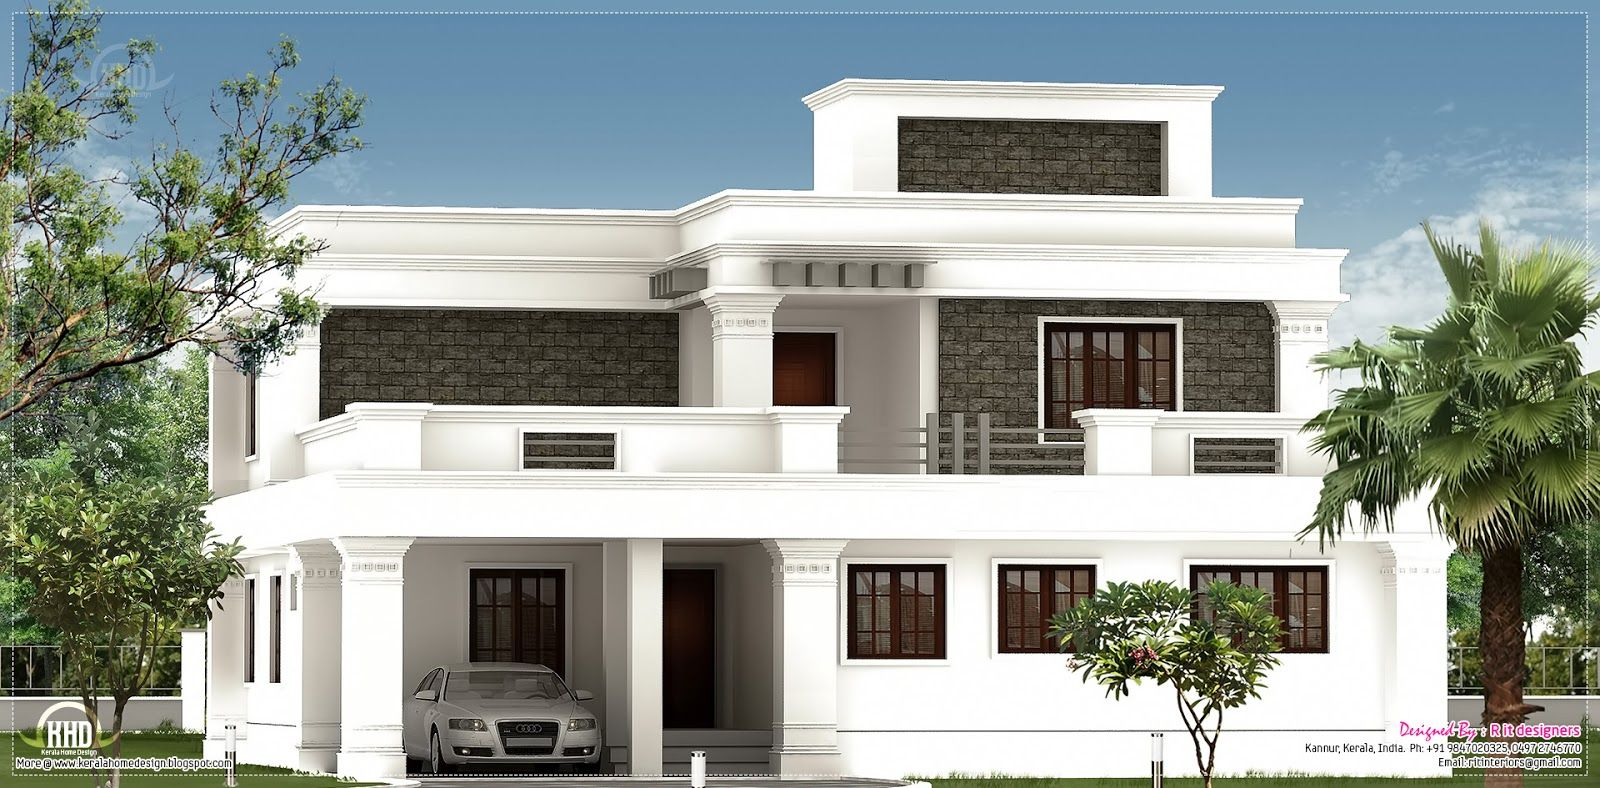 Beautiful Flat Roof Homes Designs | Flat Roof Villa Exterior In 2400 Sq.feet   Kerala Part 3